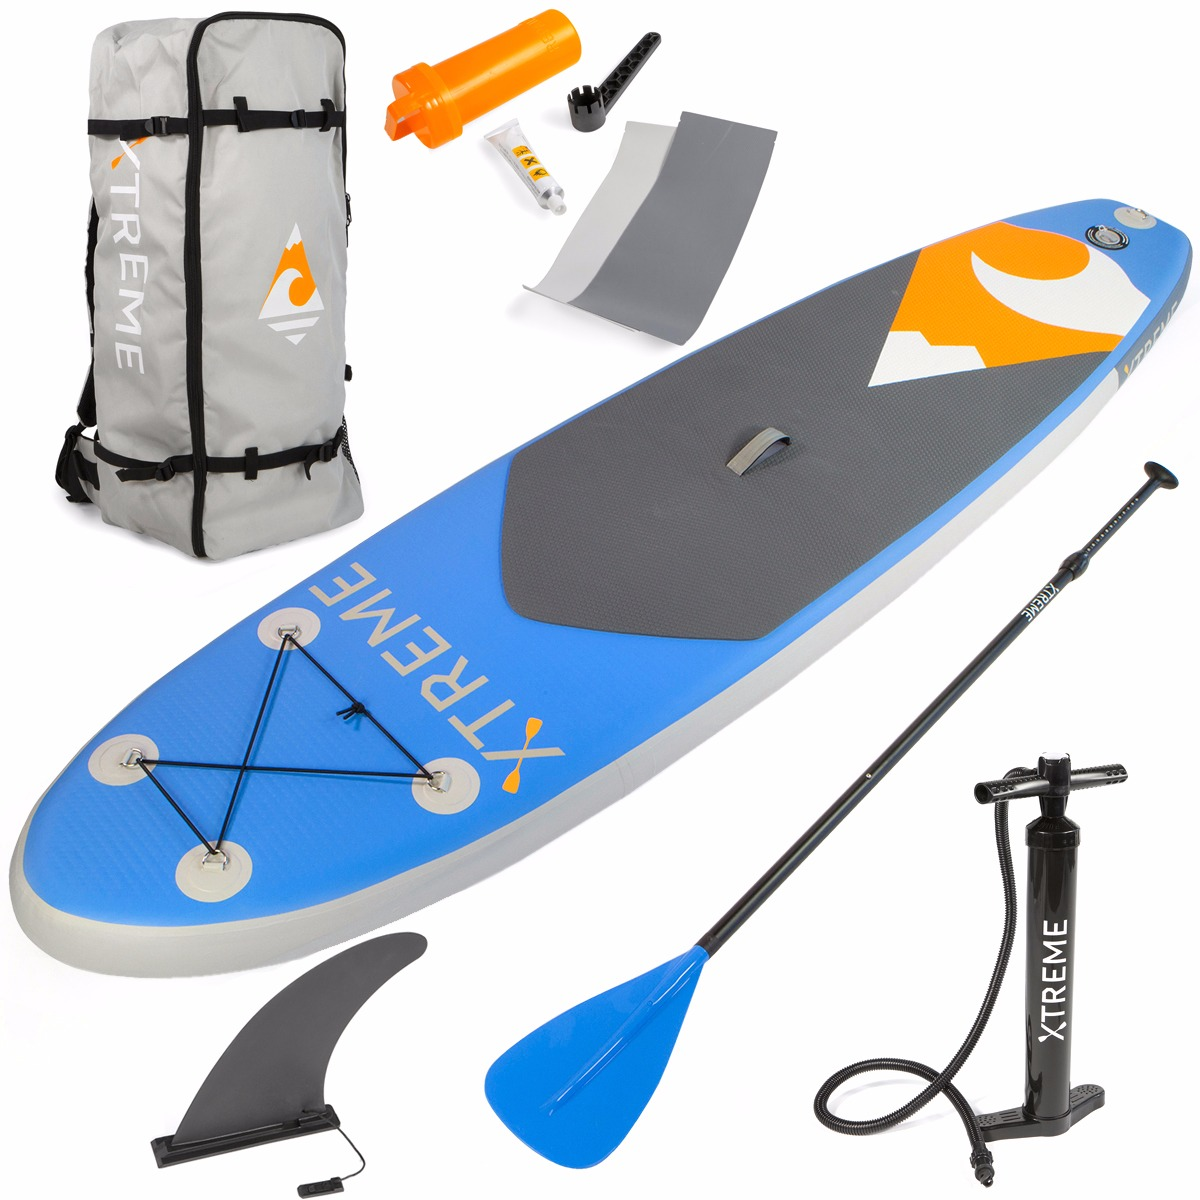 Click here to buy Xtreme 10ft Aqua SUP Paddle Board Inflatable StandUp PaddleBoard, Blue.